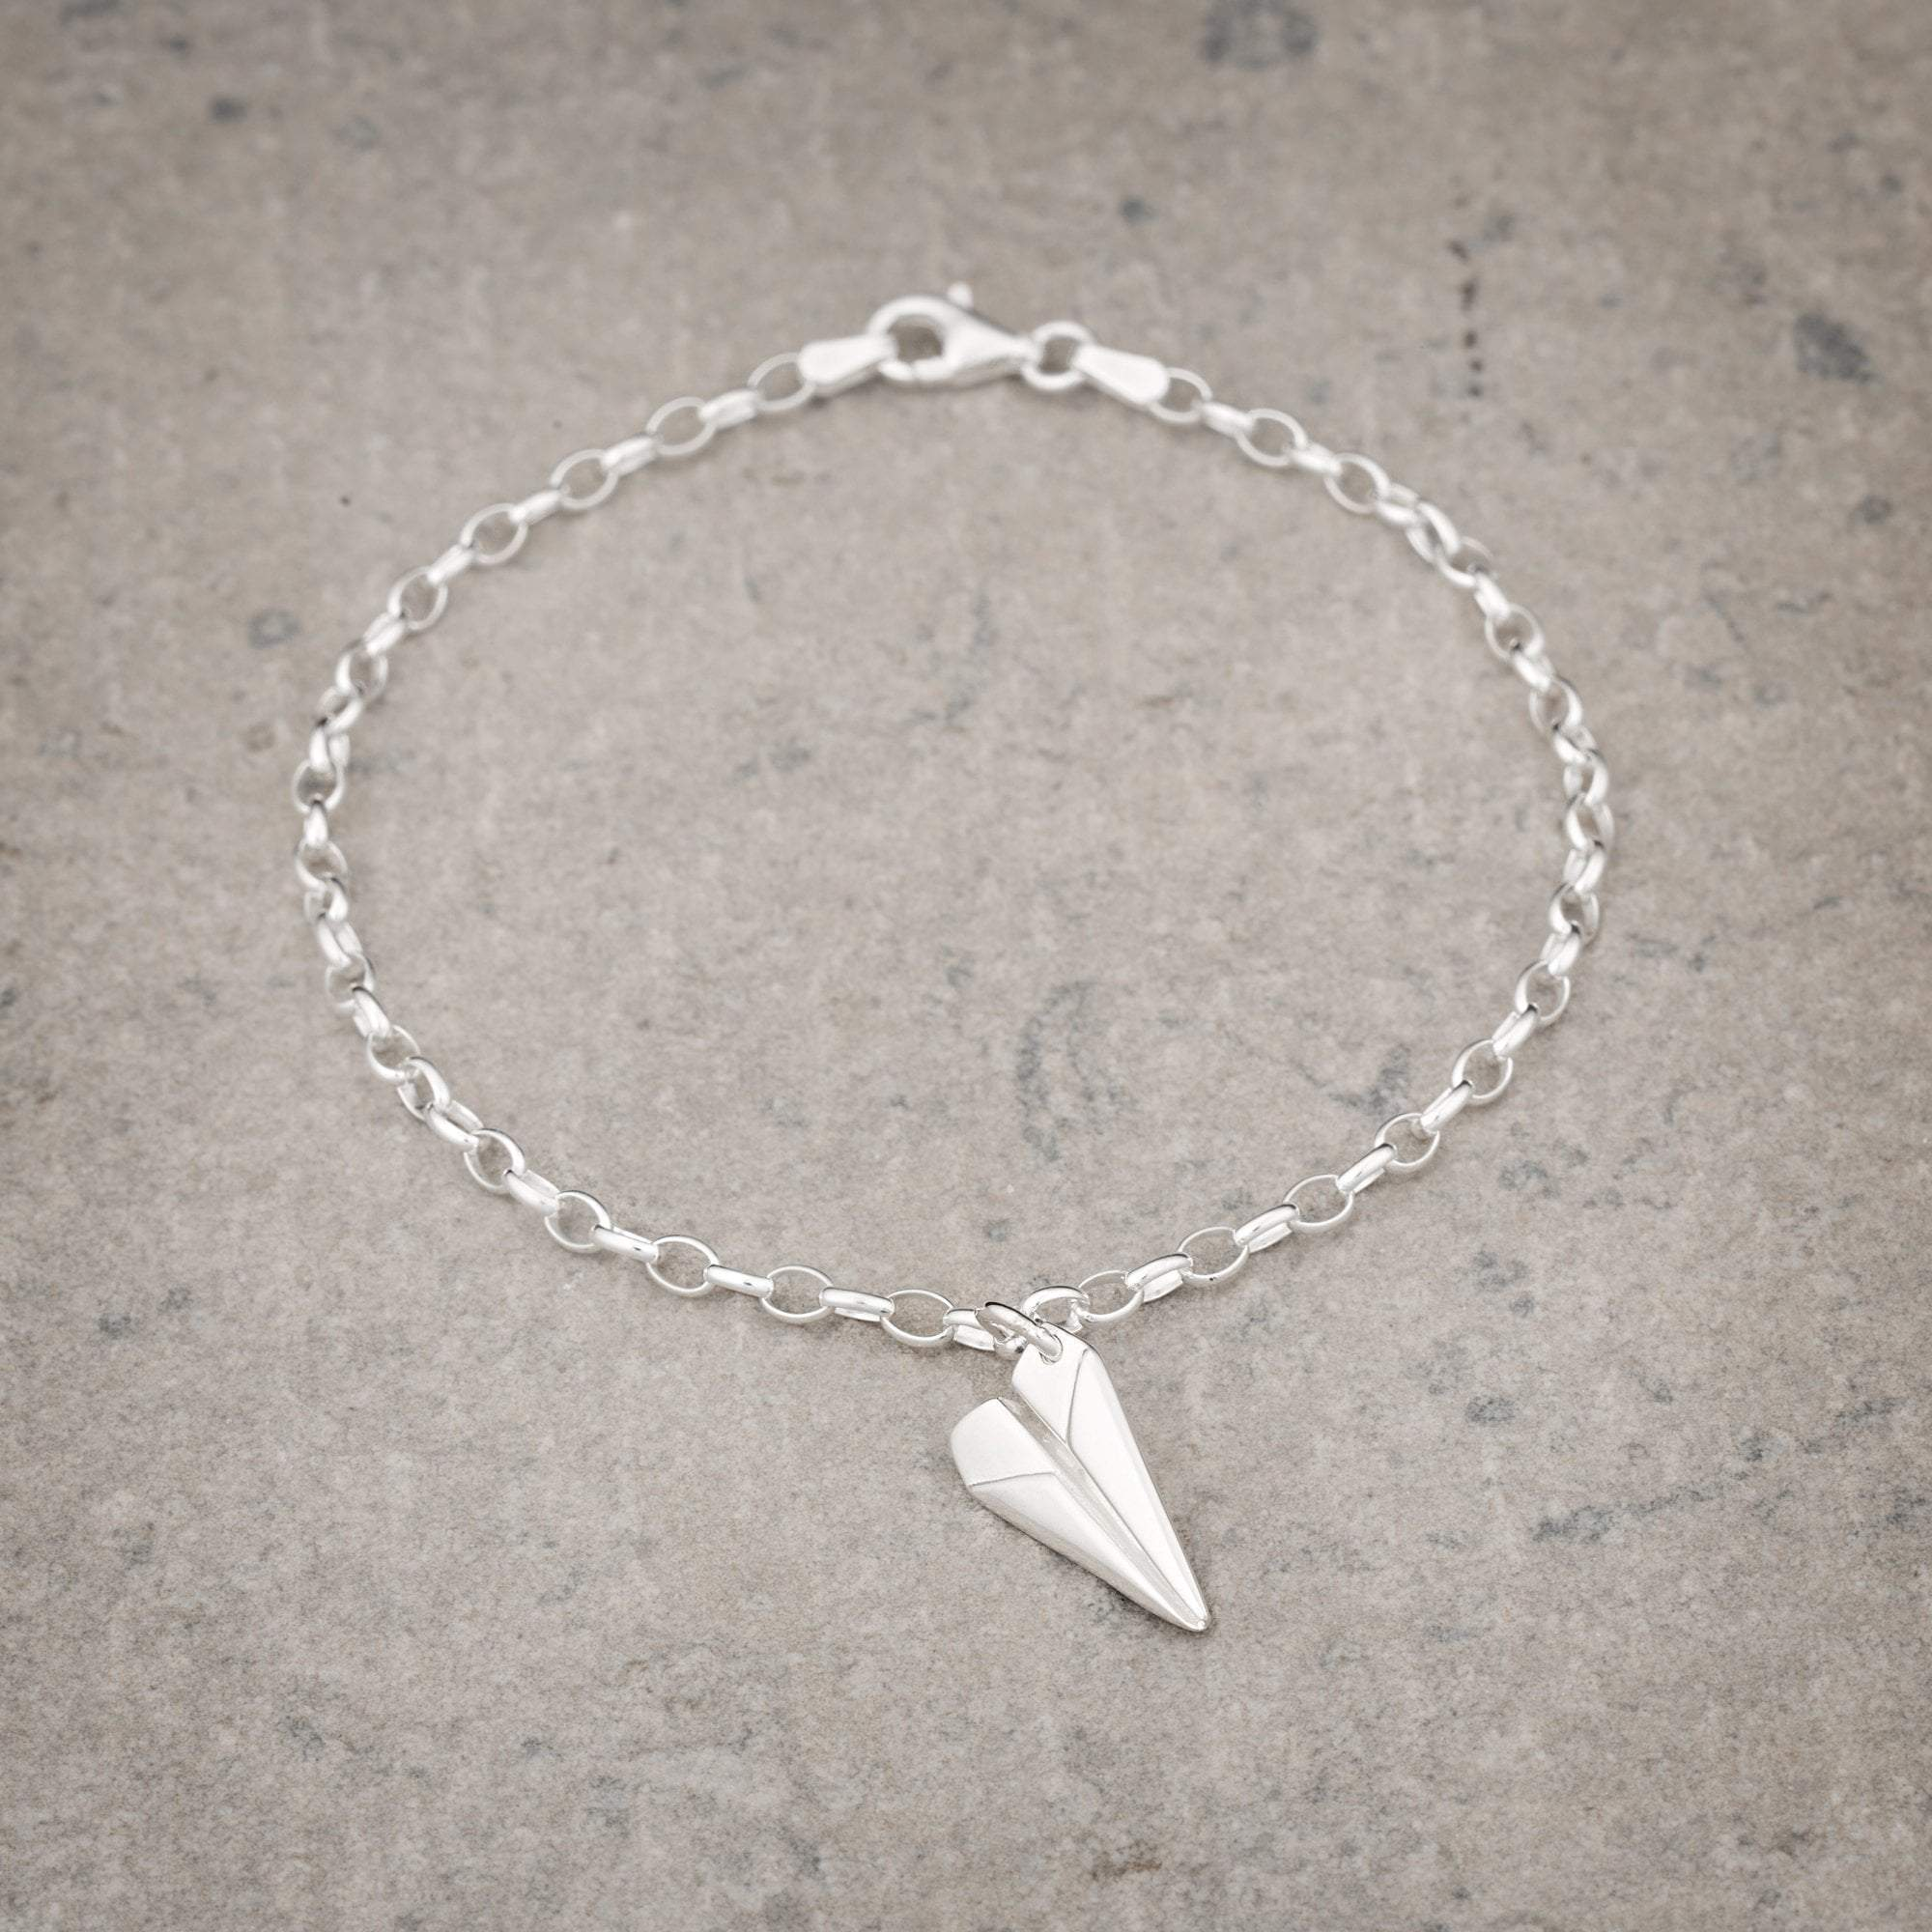 Personalised Silver Paper Plane Charm Bracelet - Lily Charmed